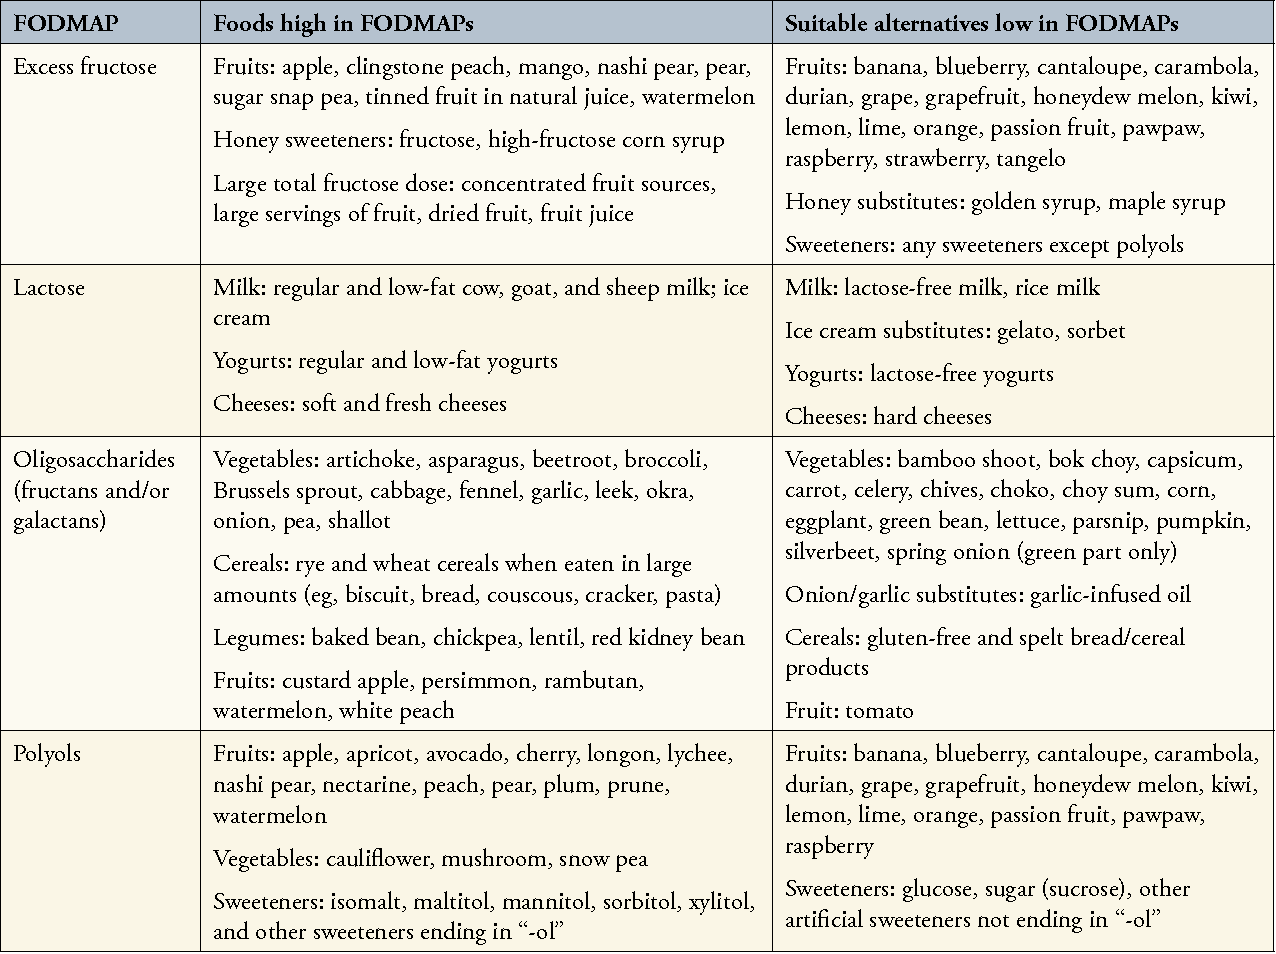 Table 1 From Low Fodmap Diet For Treatment Of Irritable Bowel